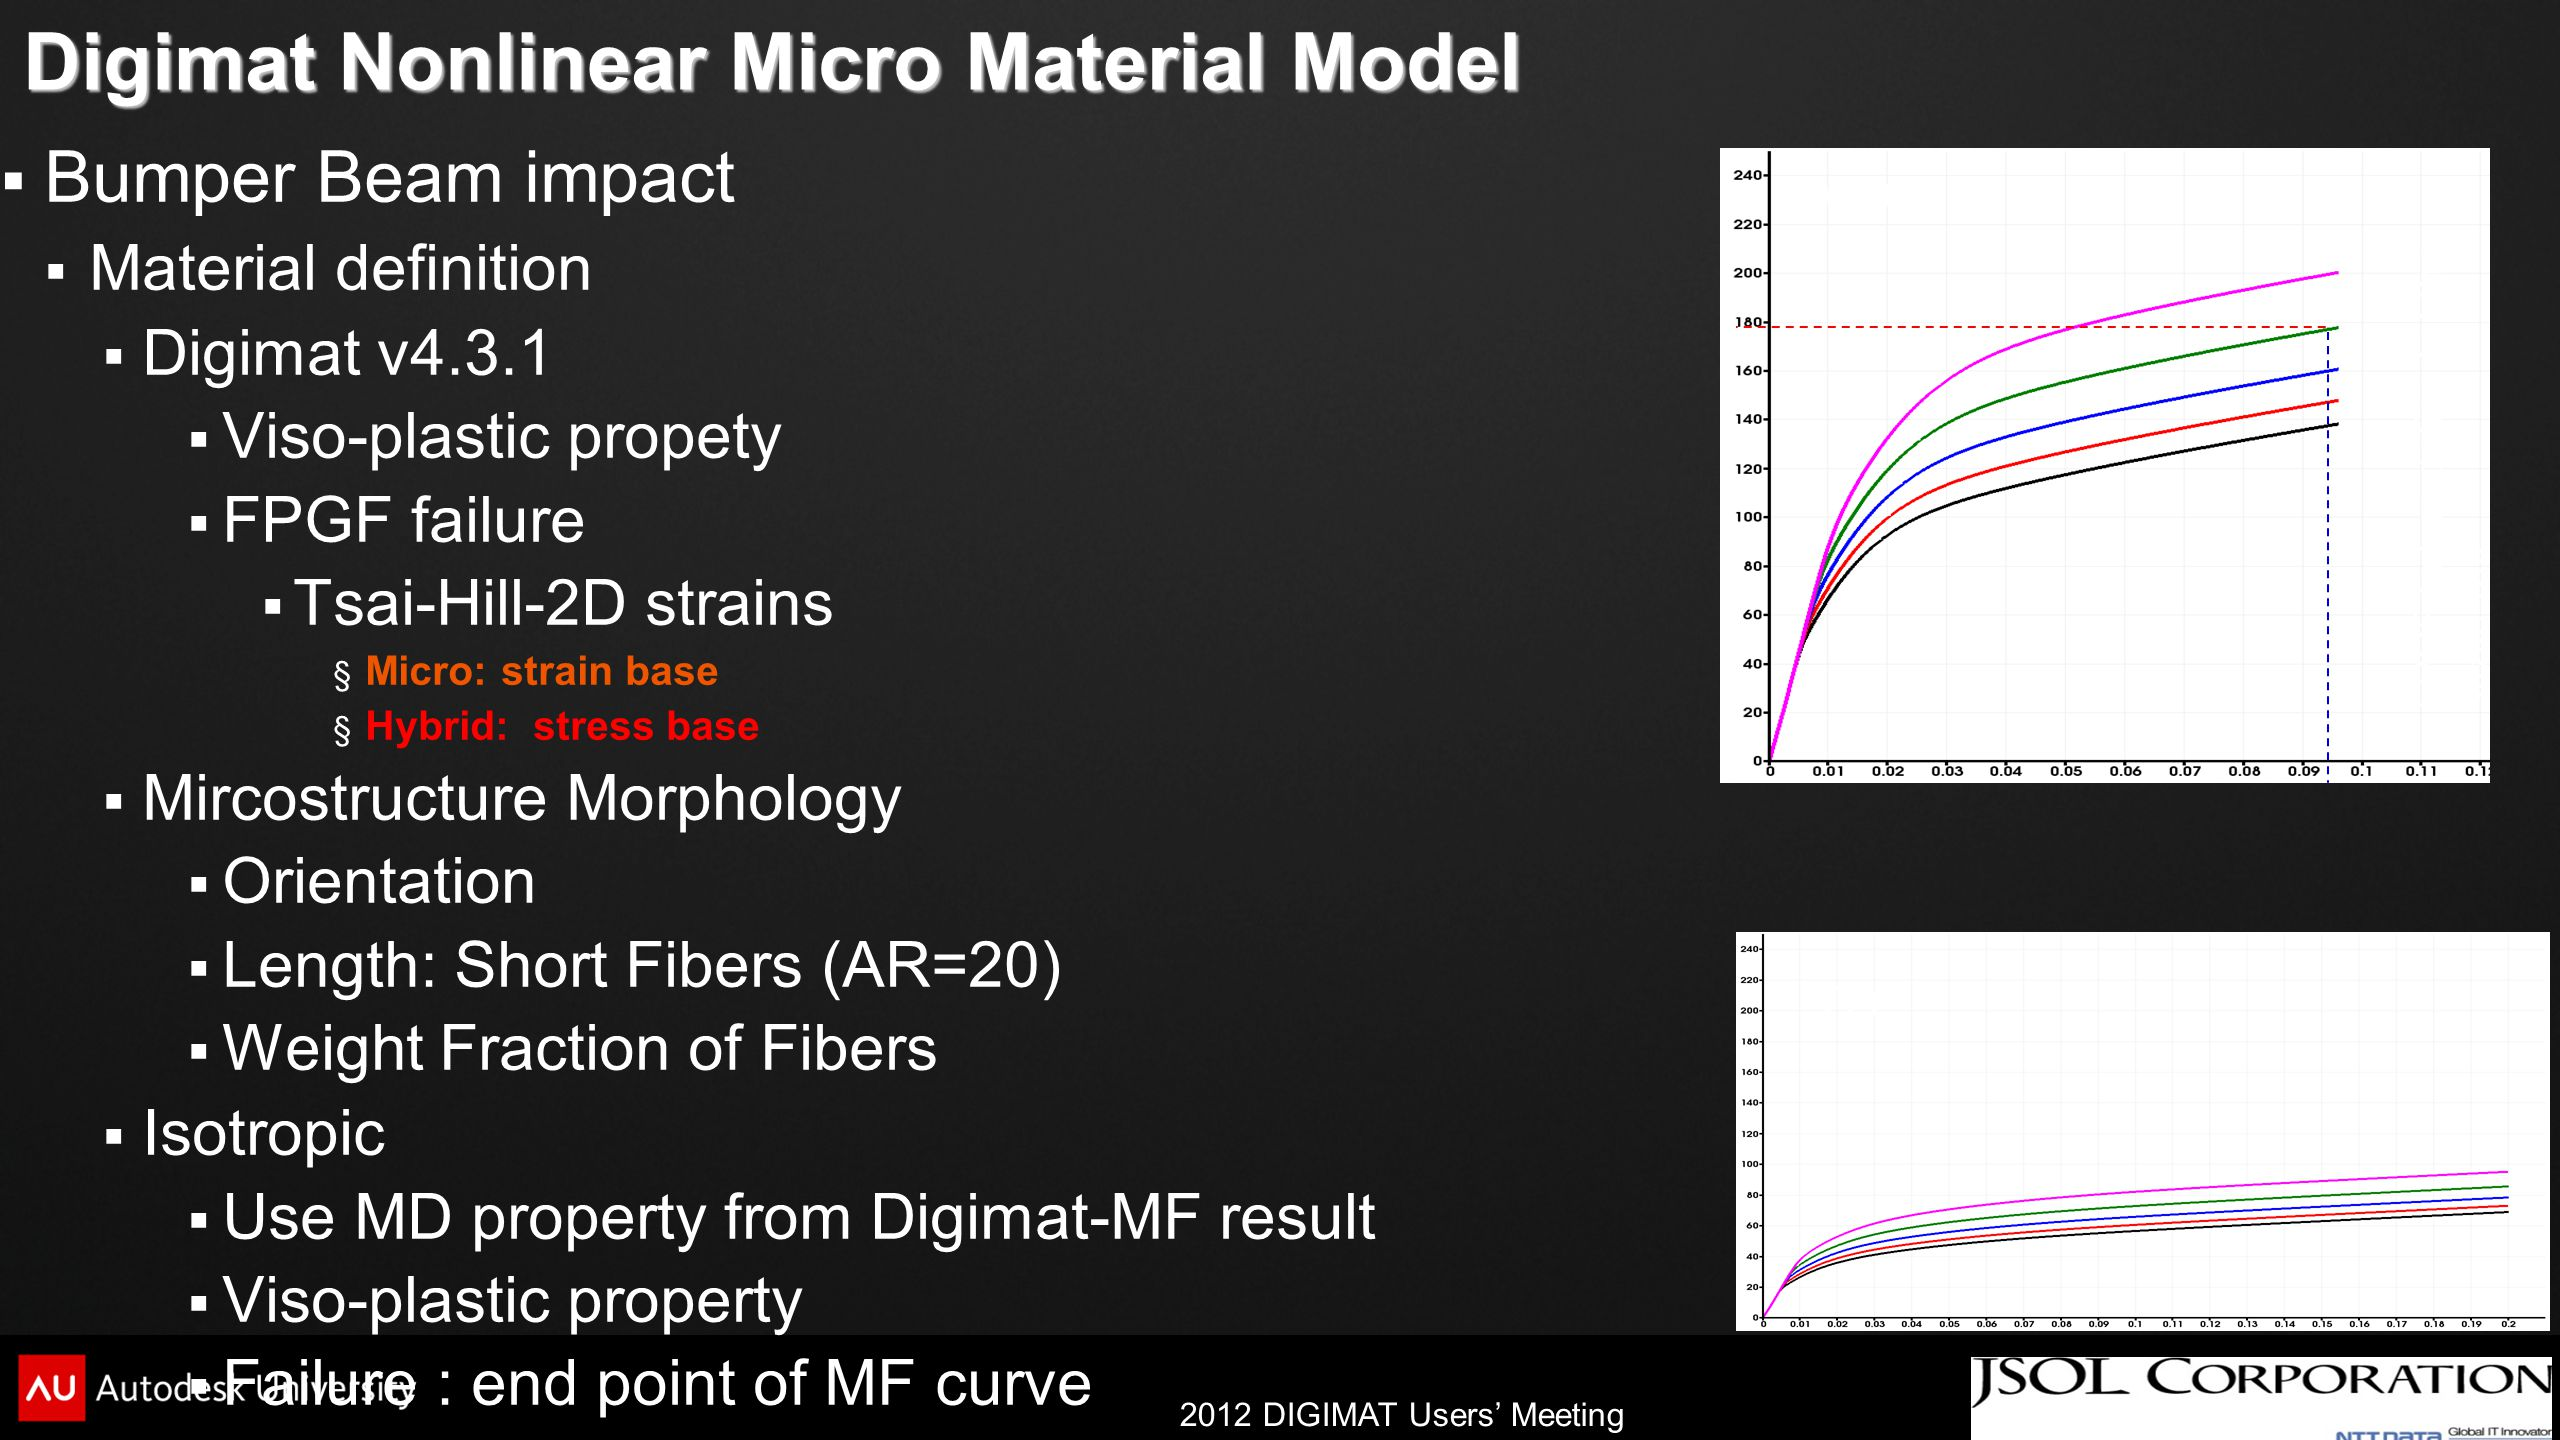 Digimat Nonlinear Micro Material Model